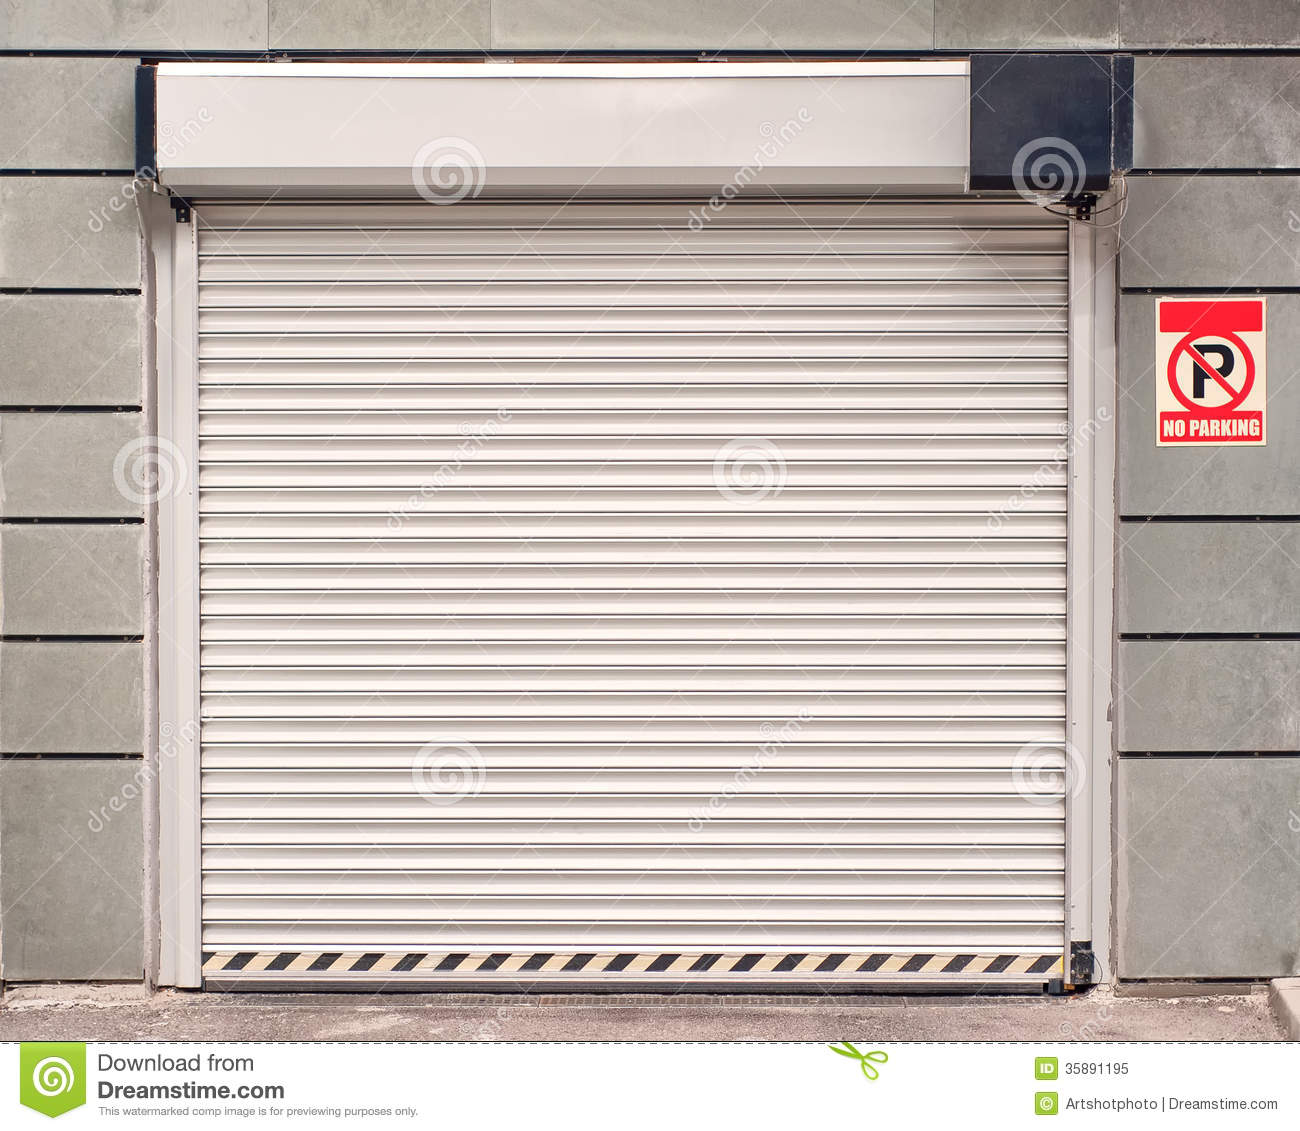 Garage Door With No Parking Sign